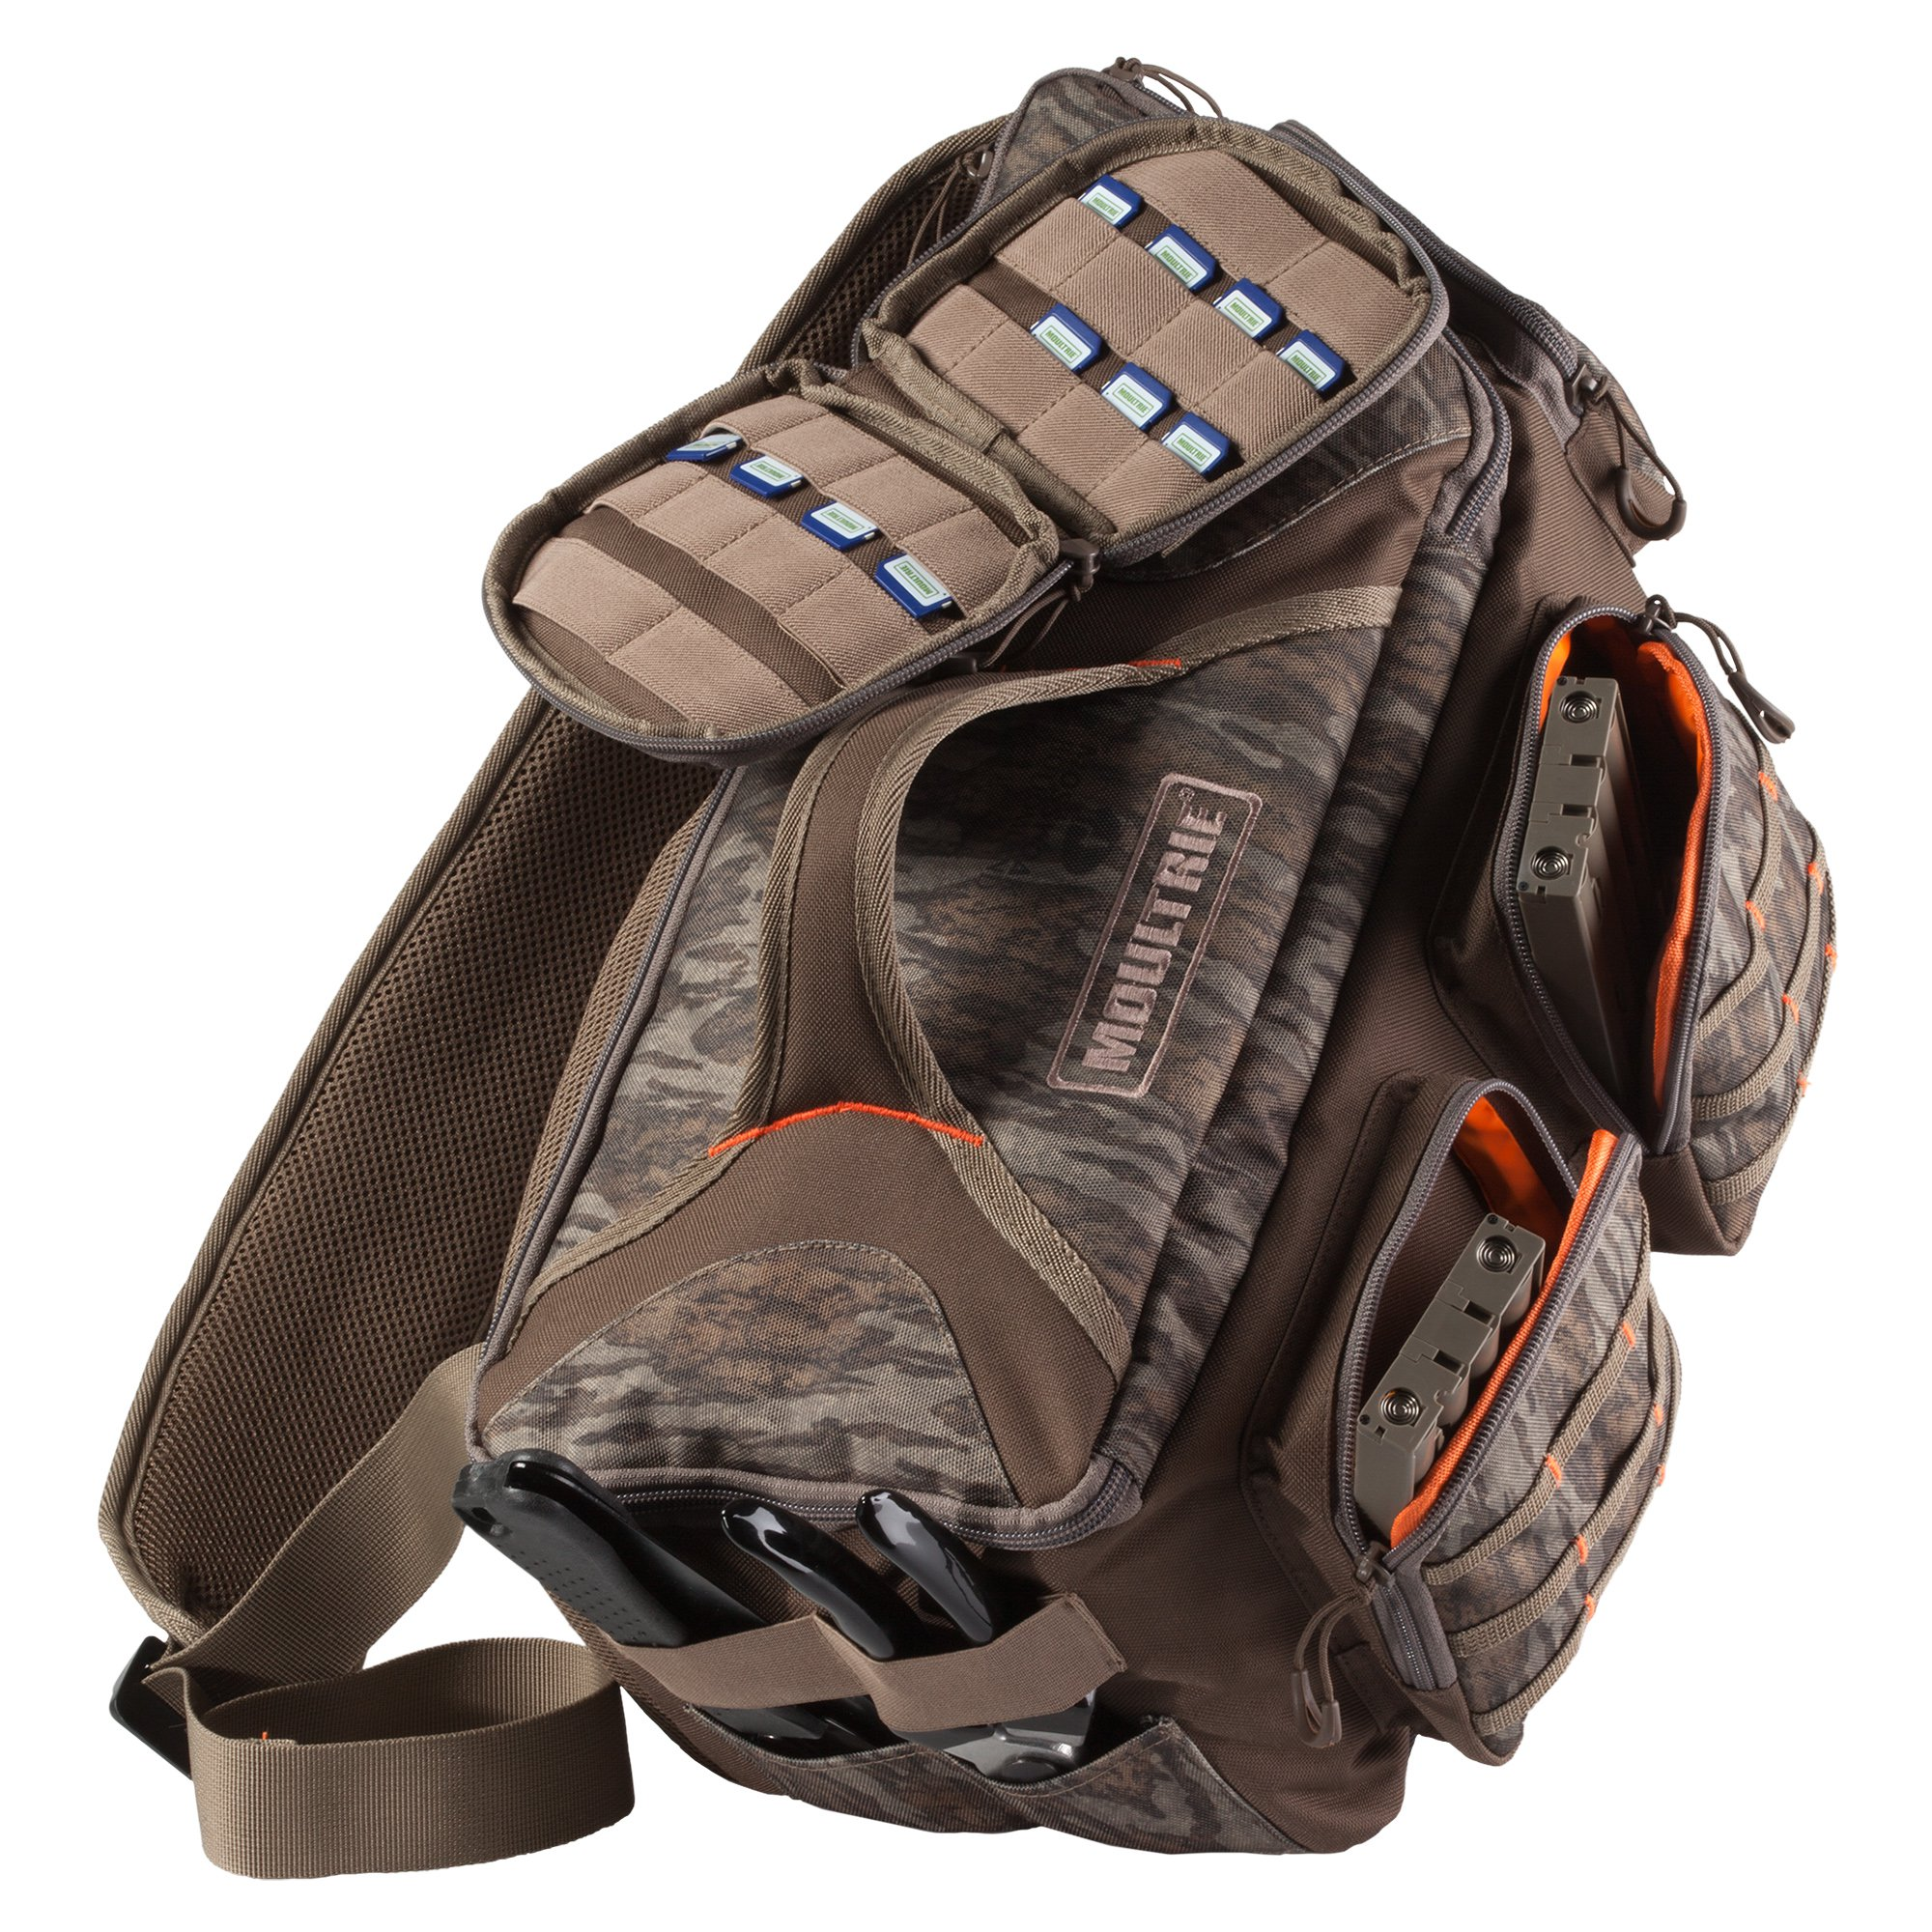 Moultrie 6 Game Camera and Accessory Field Bag with Shoulder Strap | MCA-13190